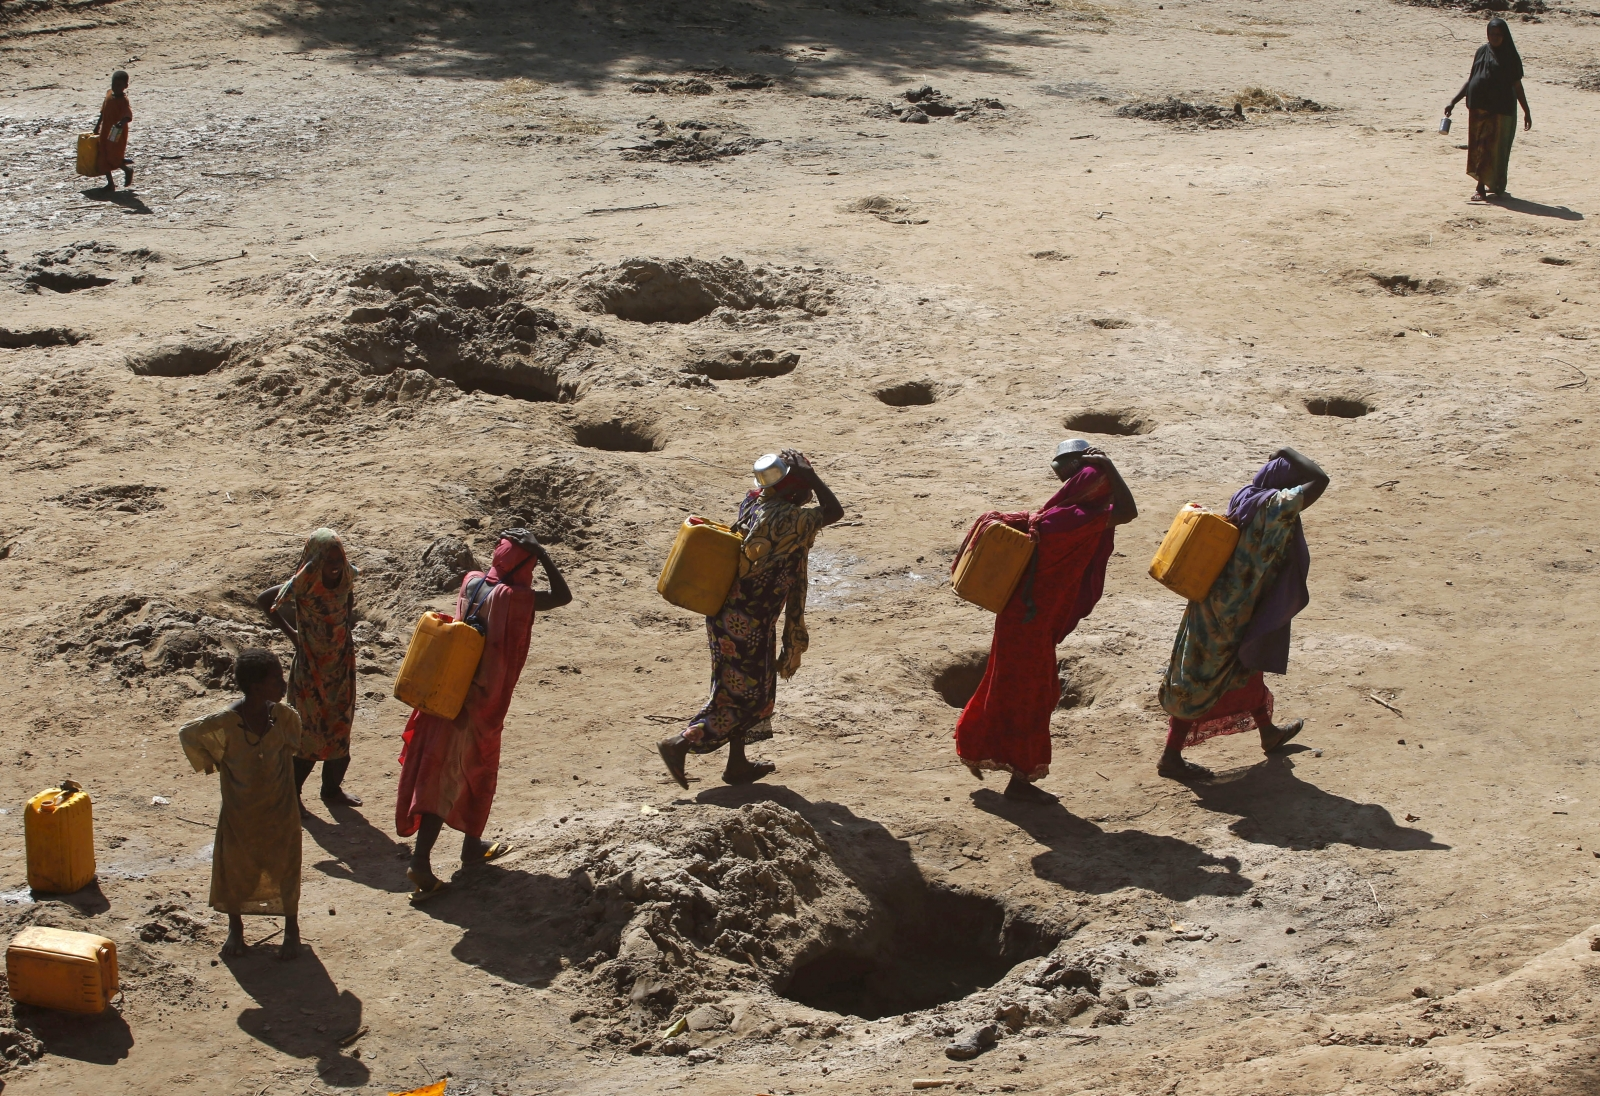 Women carry jerry cans of water